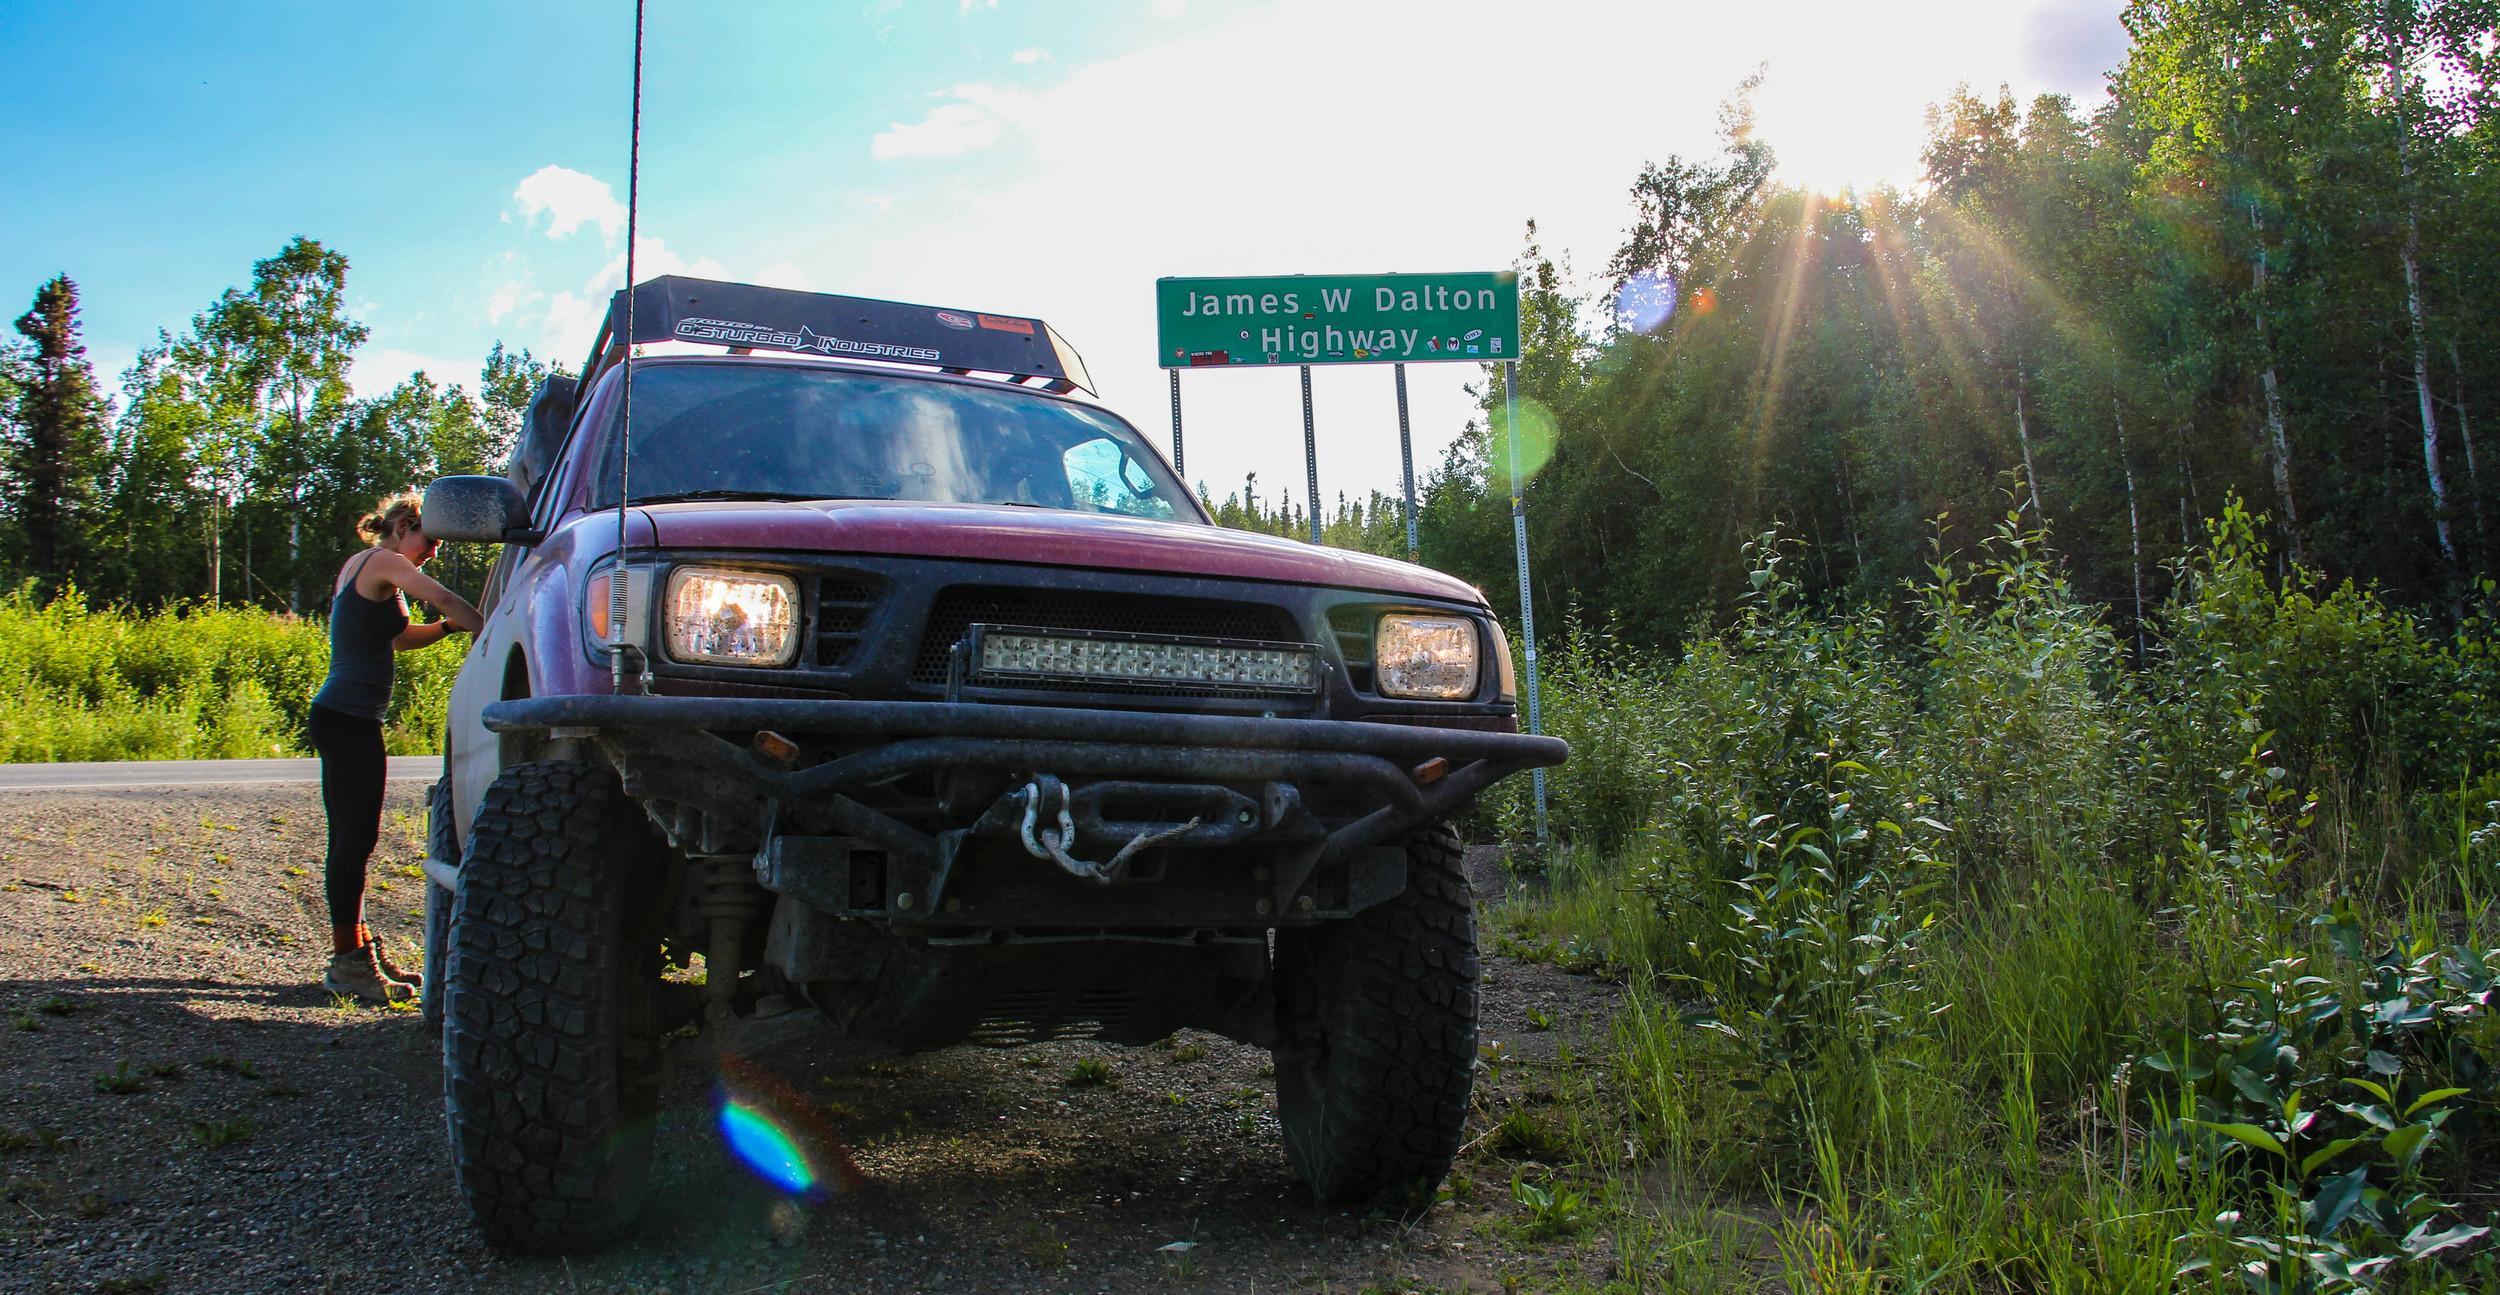 Our little 96' Toyota Tacoma with a 2.7L 4cyl, running 4.56 gears and 33x10.5 BFG KM2's.